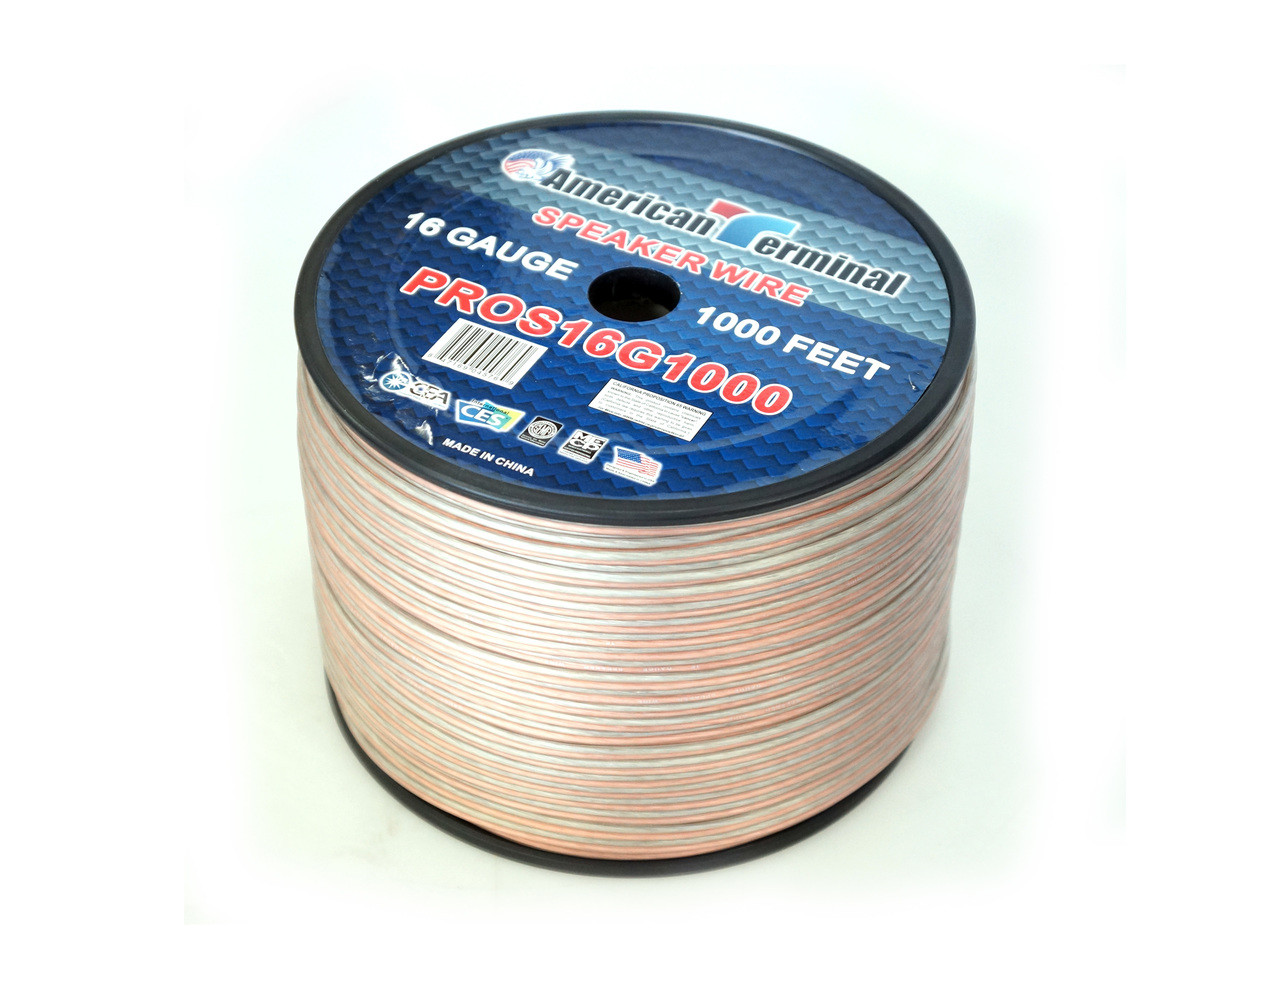 American Terminal PROS16G1000 1000 ft. of 16 Gauge Pro Series Clear Speaker Wire